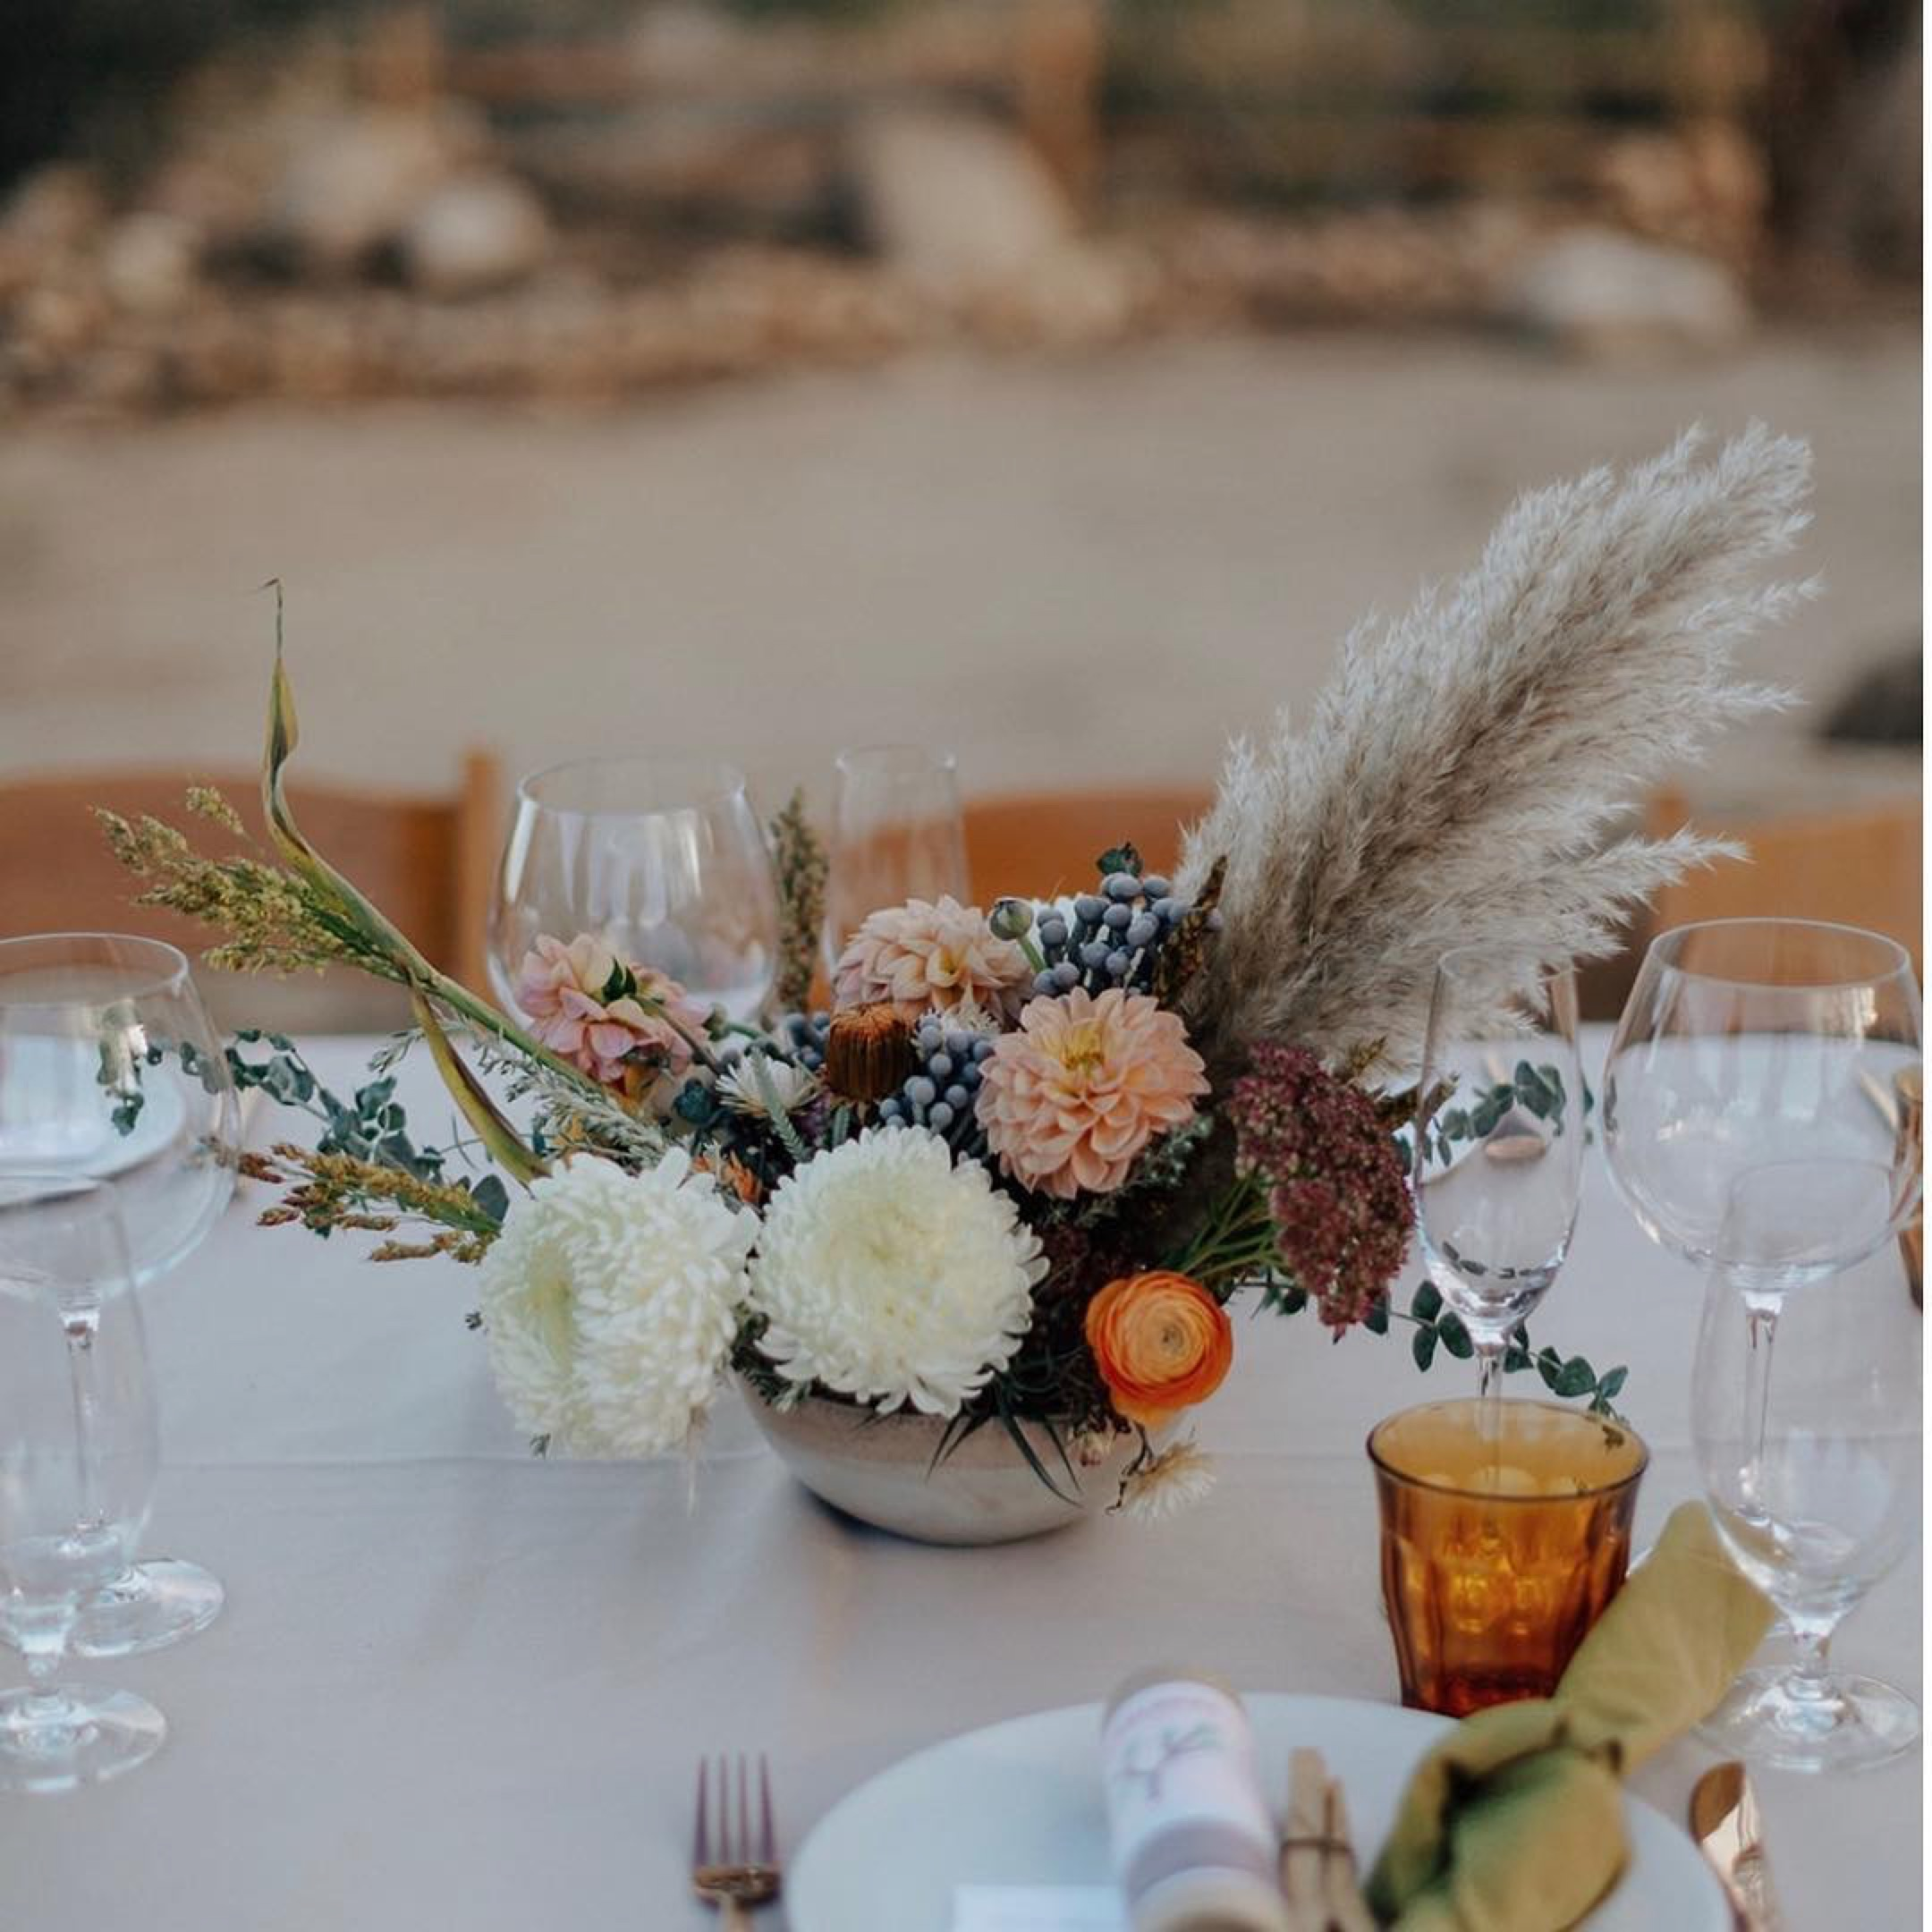 Wedding Center Pieces for Primary Petals / Photo Credit: Logan Cole Photo